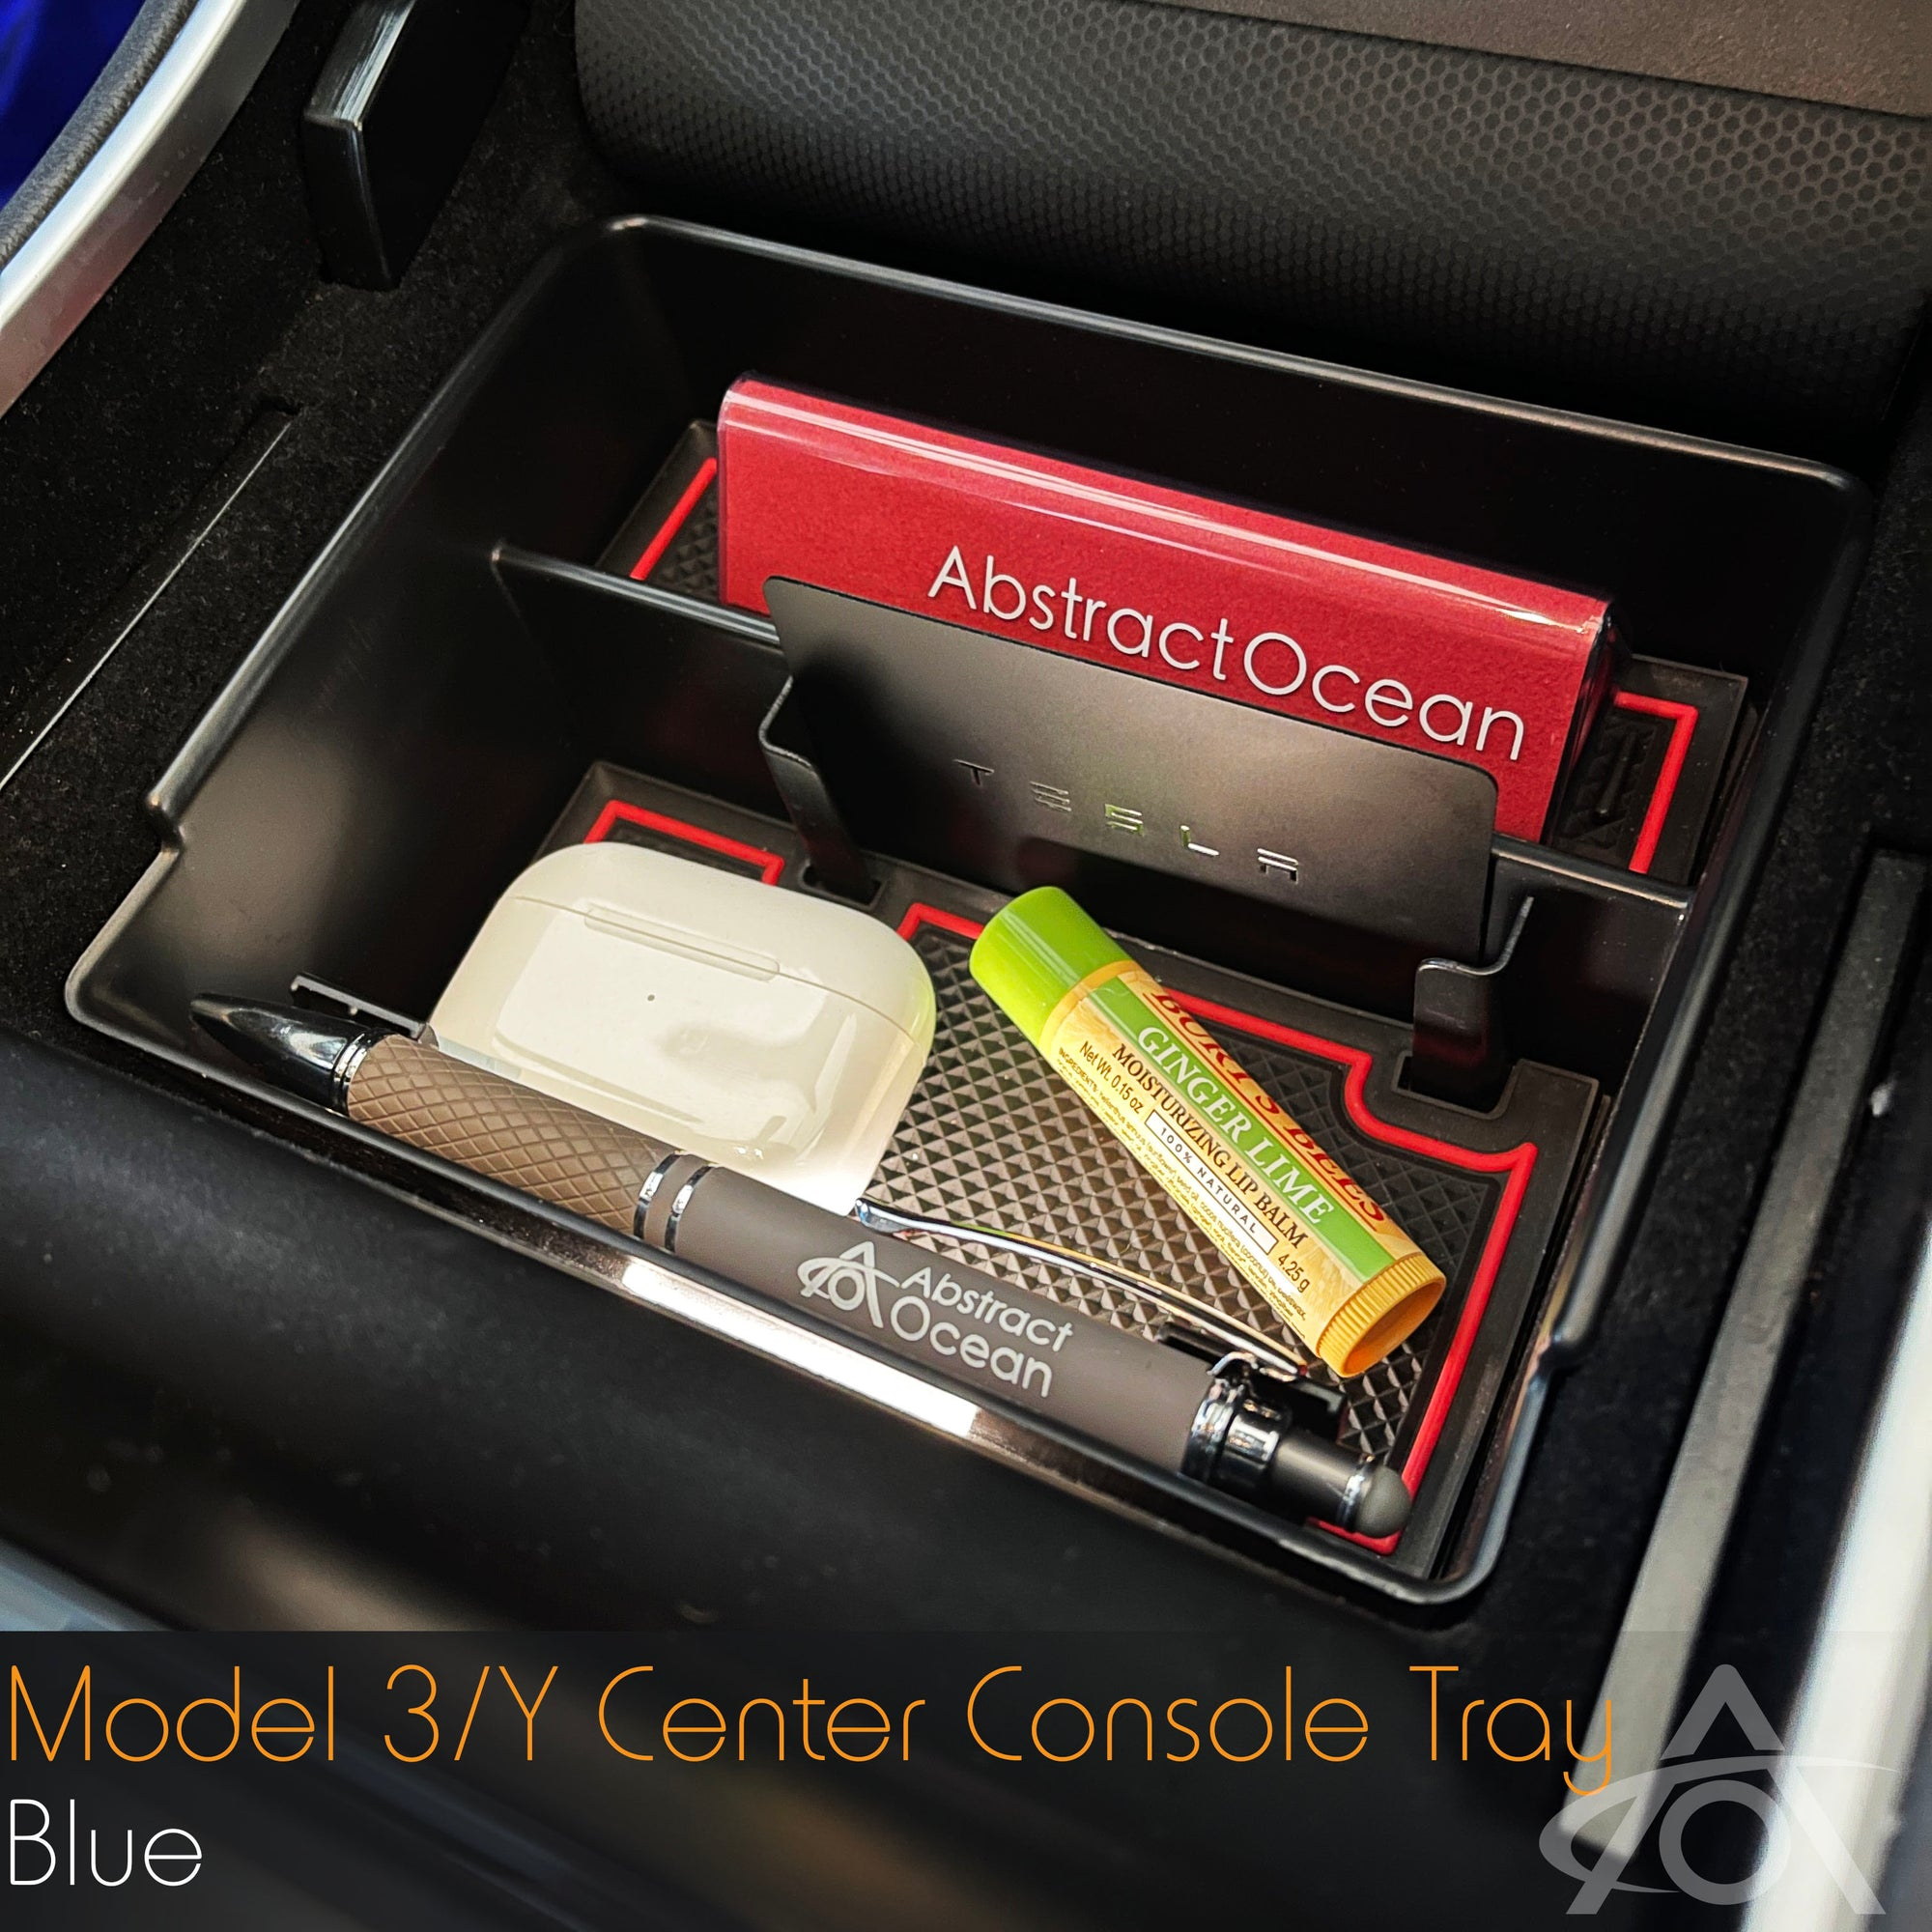 Center Console Tray for Model 3 & Y (Gen 1 Center Console)